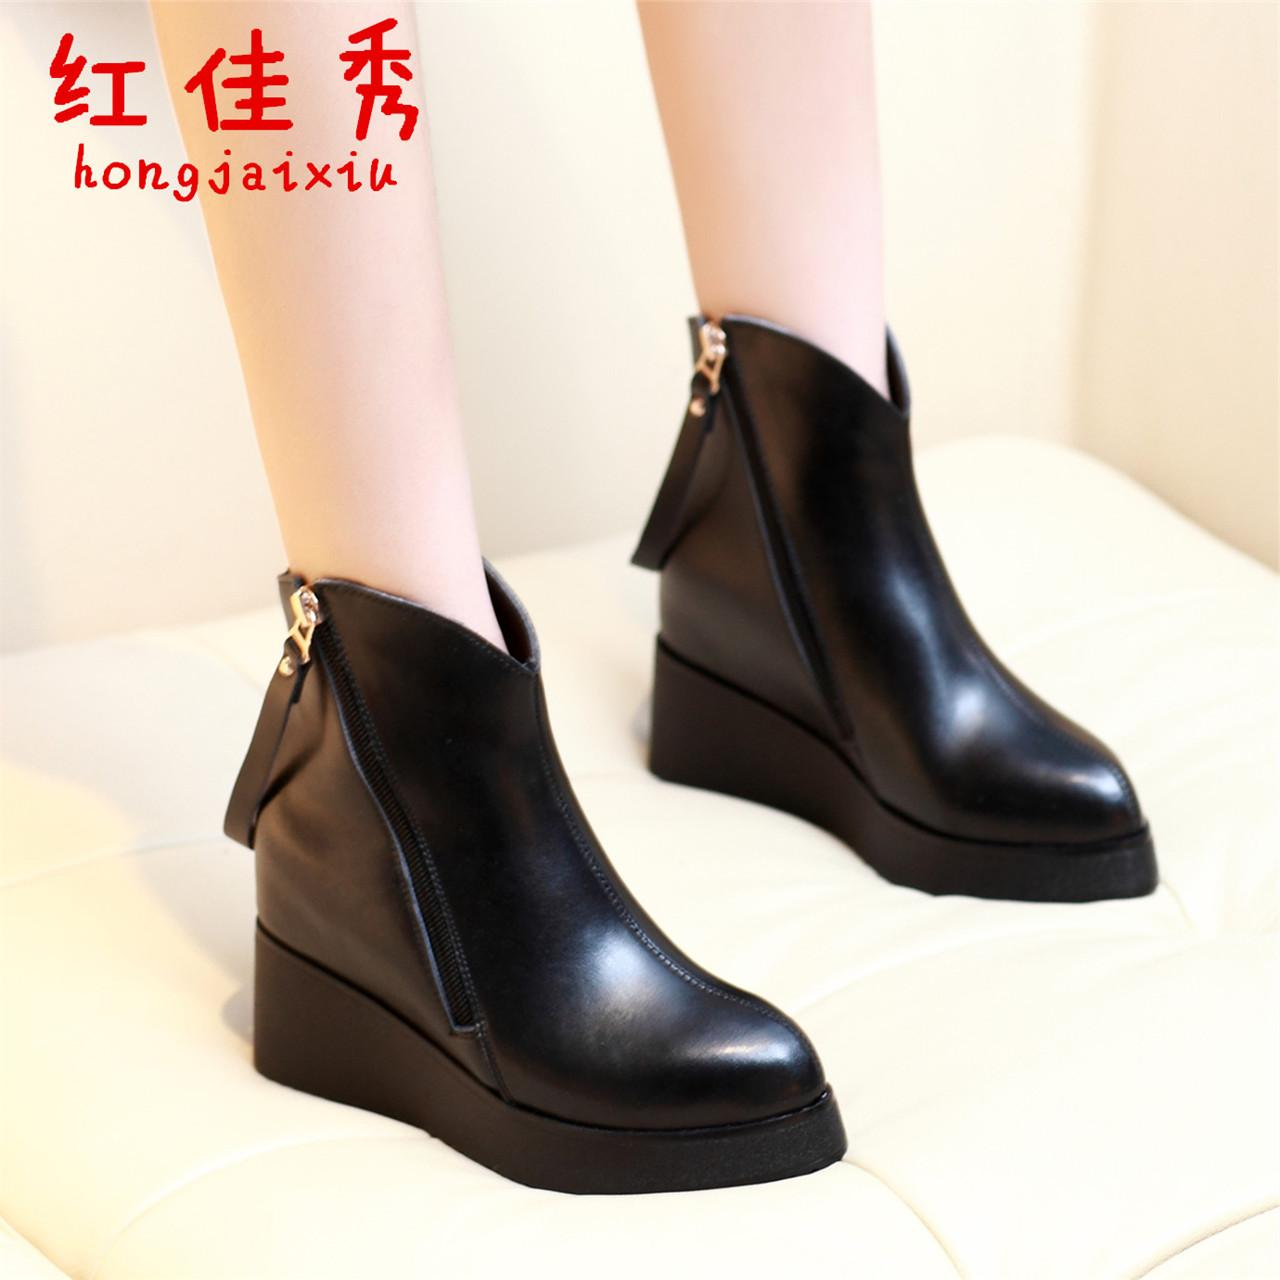 3b736f8efc9 Winter Boots for Women for sale - Womens Snow Boots online brands ...